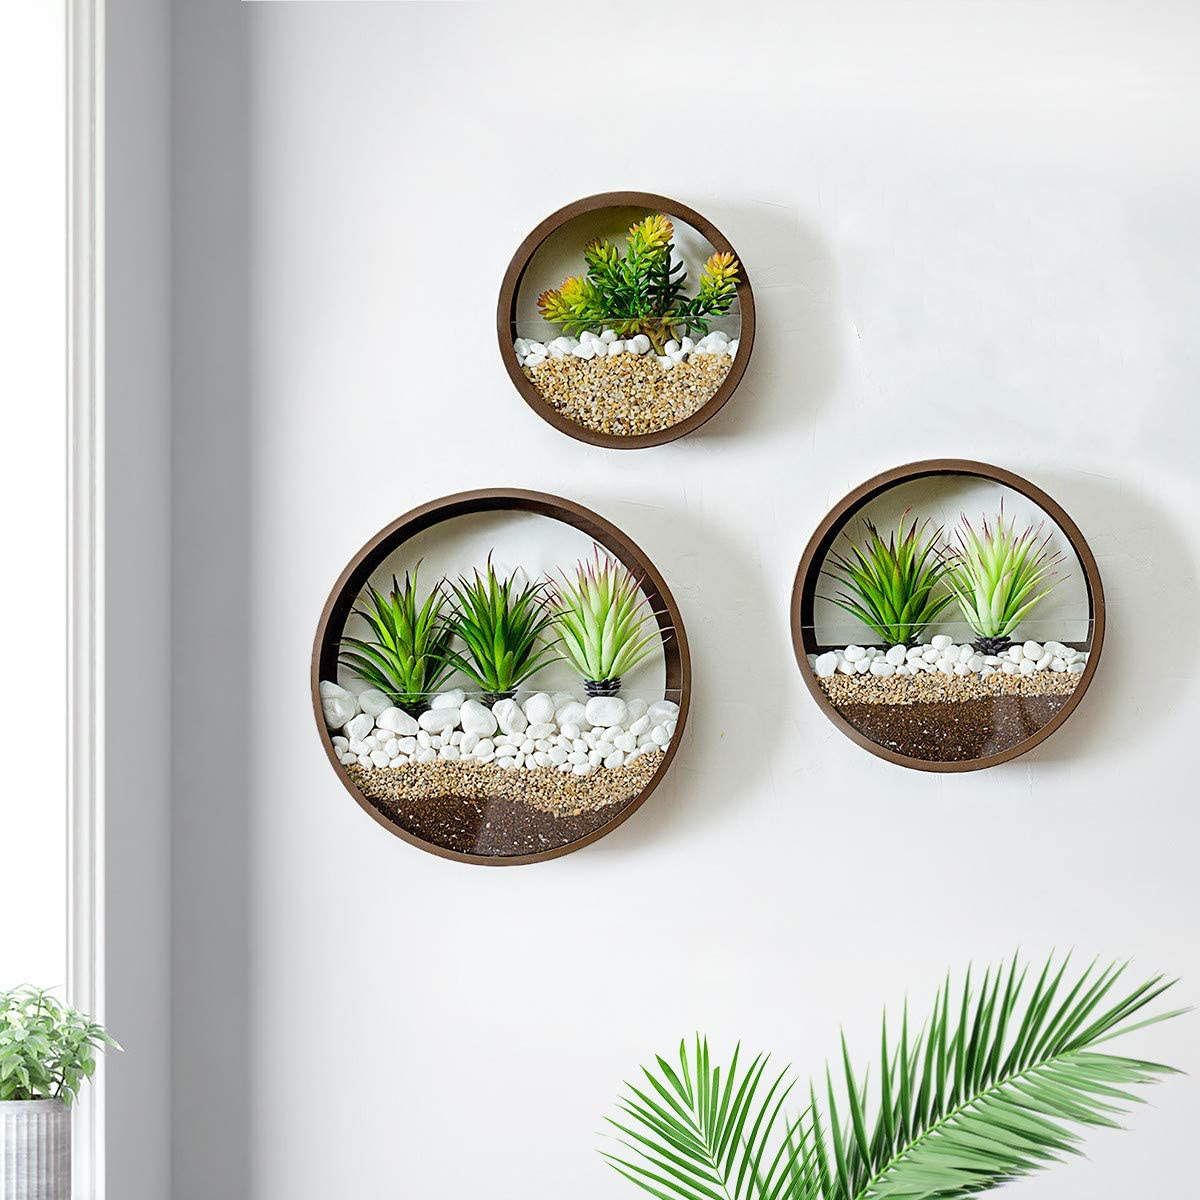 Round Hanging Wall Planters Metal Plant Containers Contemporary Morden Circle Iron Vase for Succulents or Herbs - Perfect Wall Decor for Air Plants Faux Plants Cacti and More, Brown (Mixed)